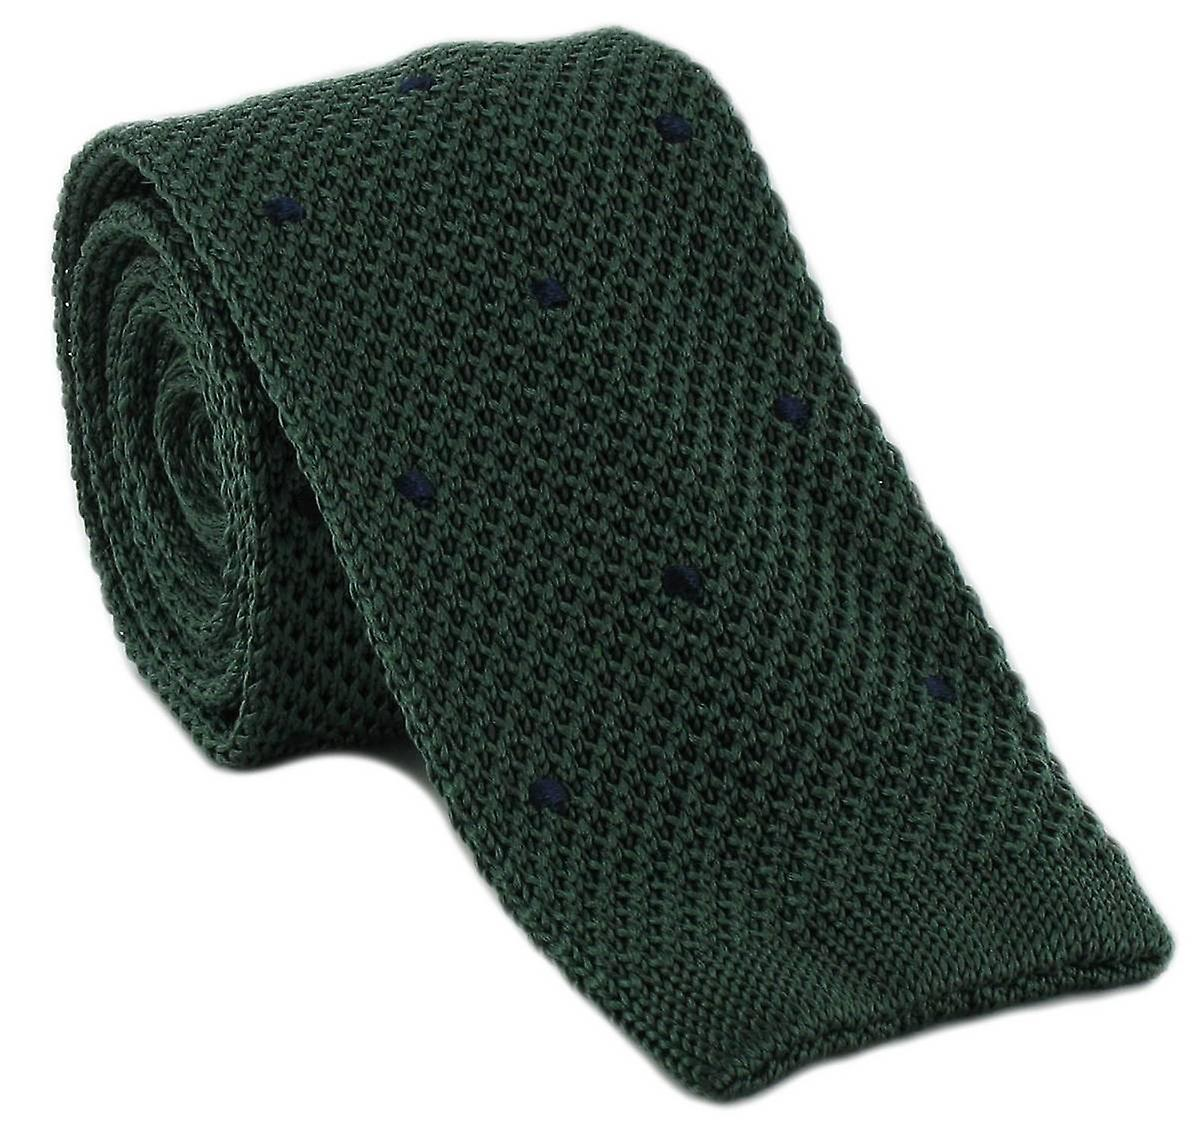 Michelsons of London Spot Design Tie - Green/Navy